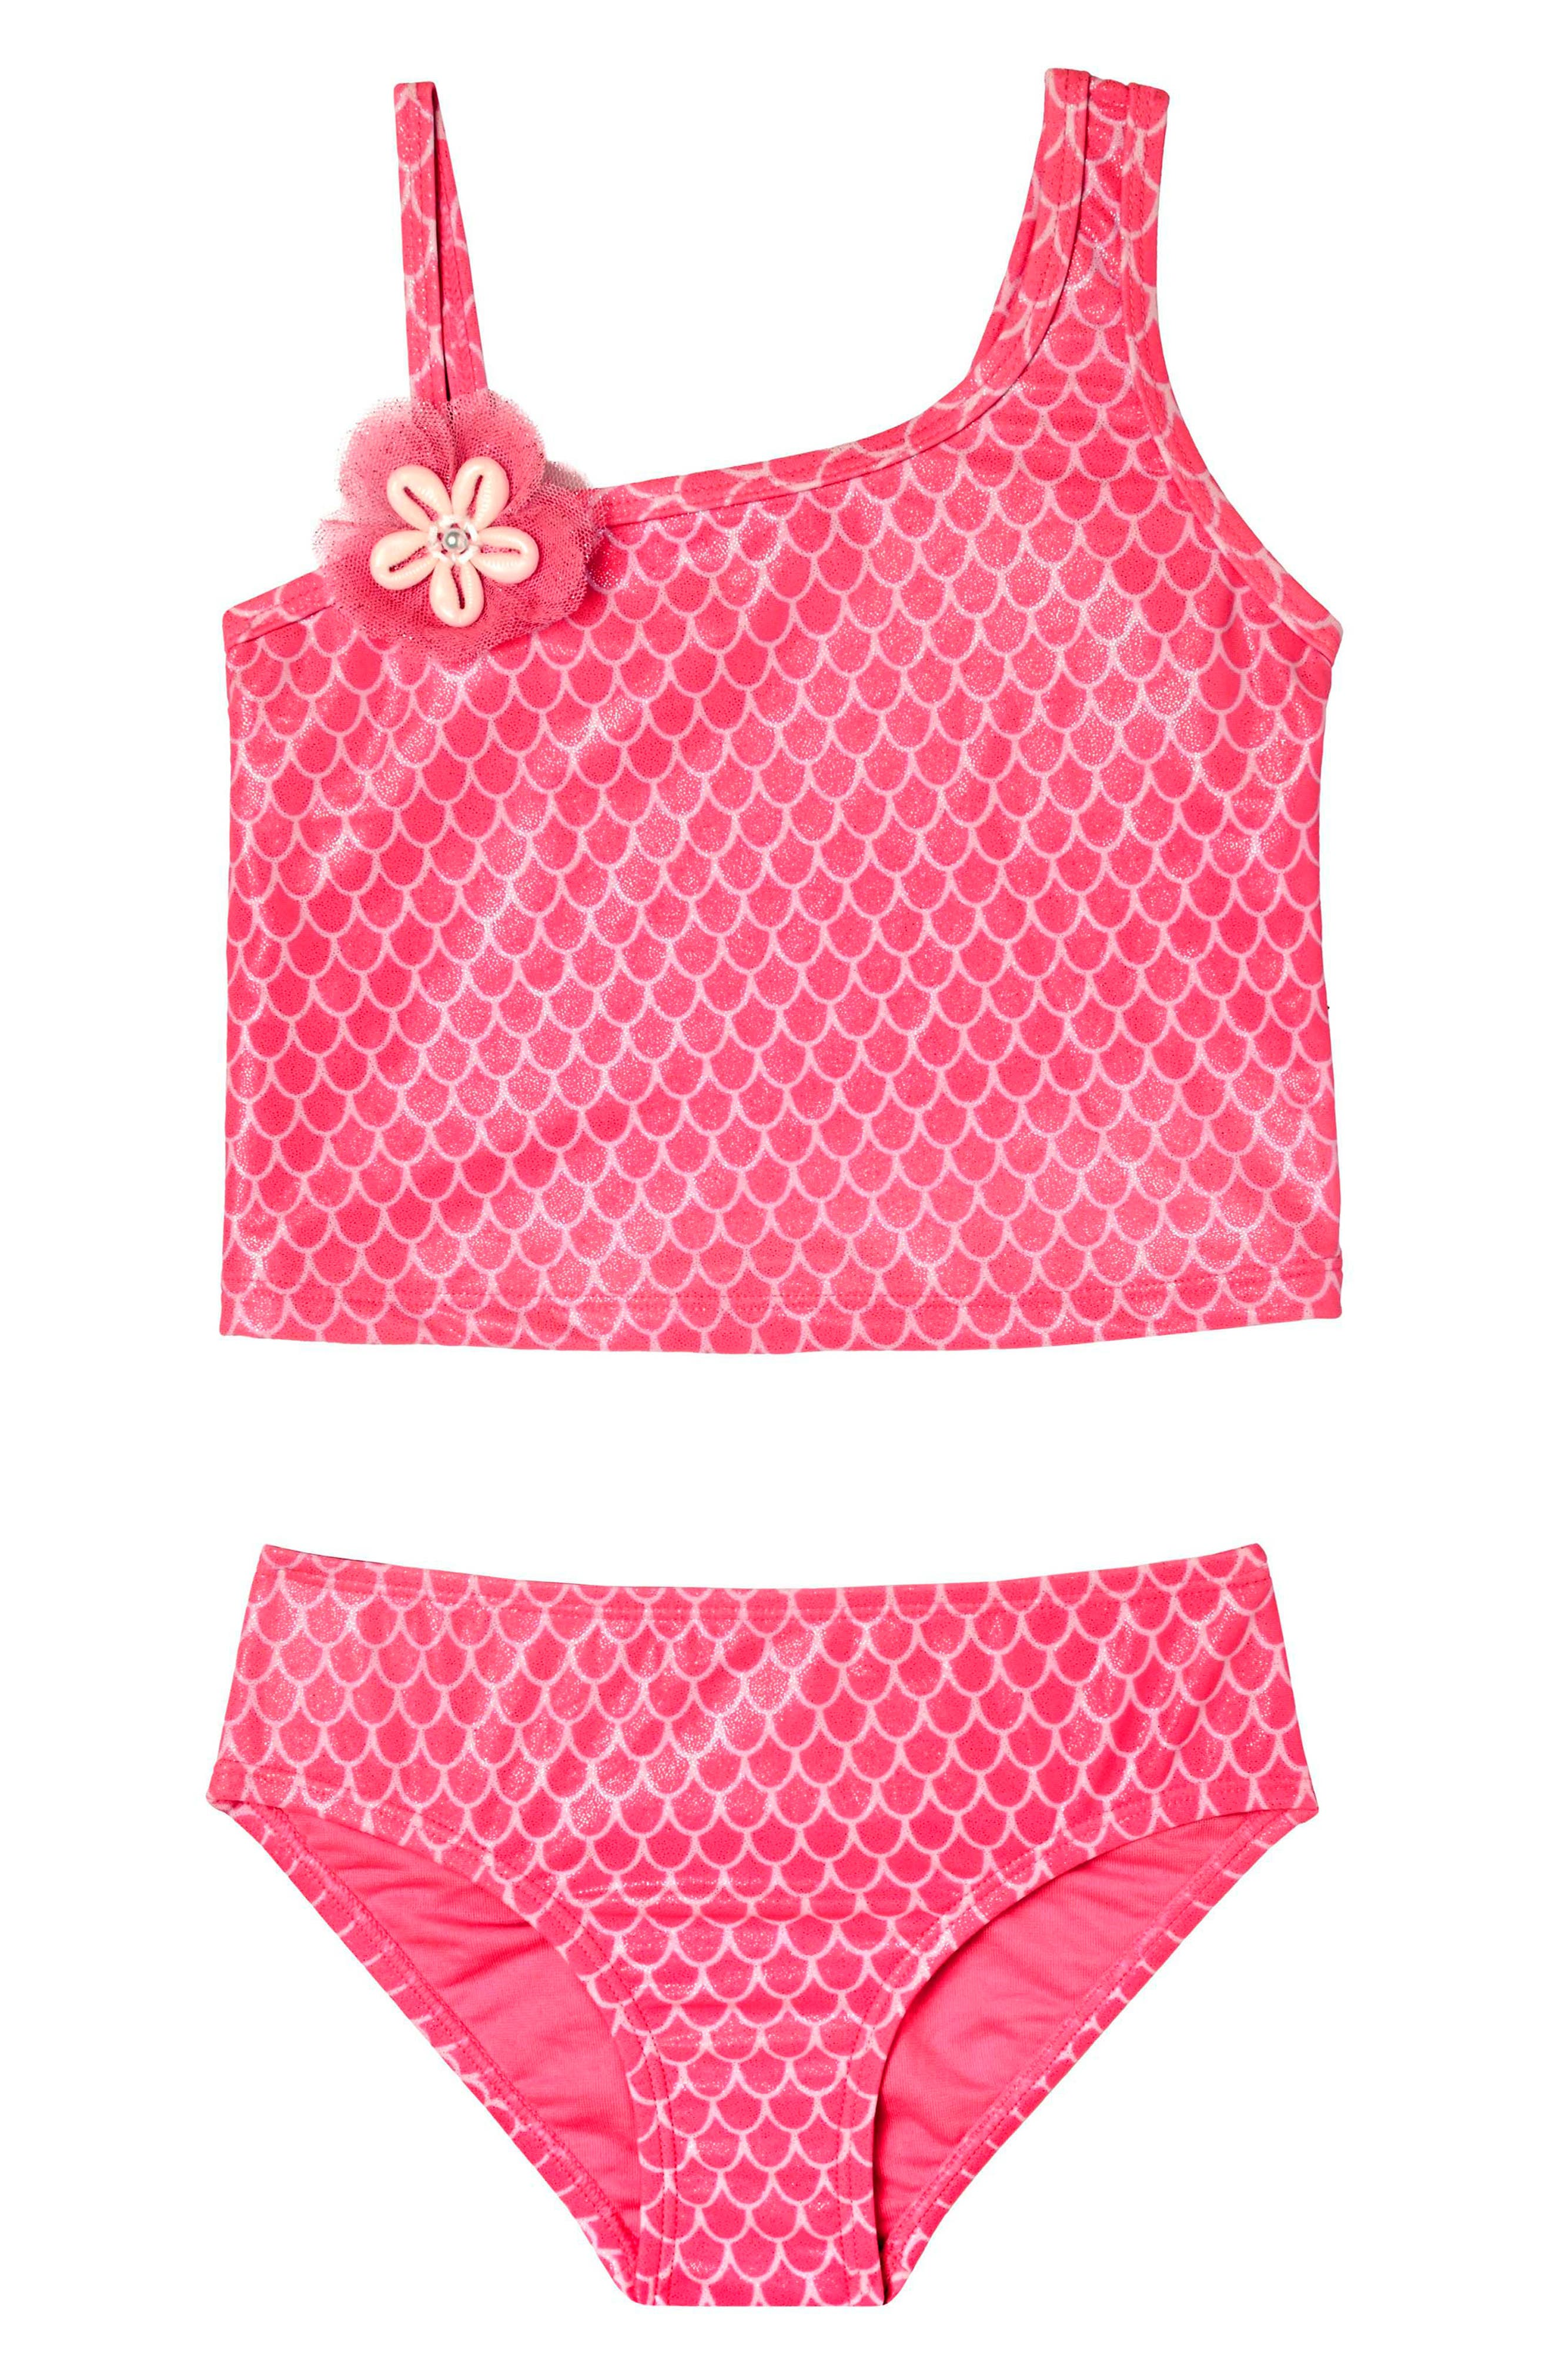 Mermaid Princess Two-Piece Tankini Swimsuit,                             Main thumbnail 1, color,                             Pink